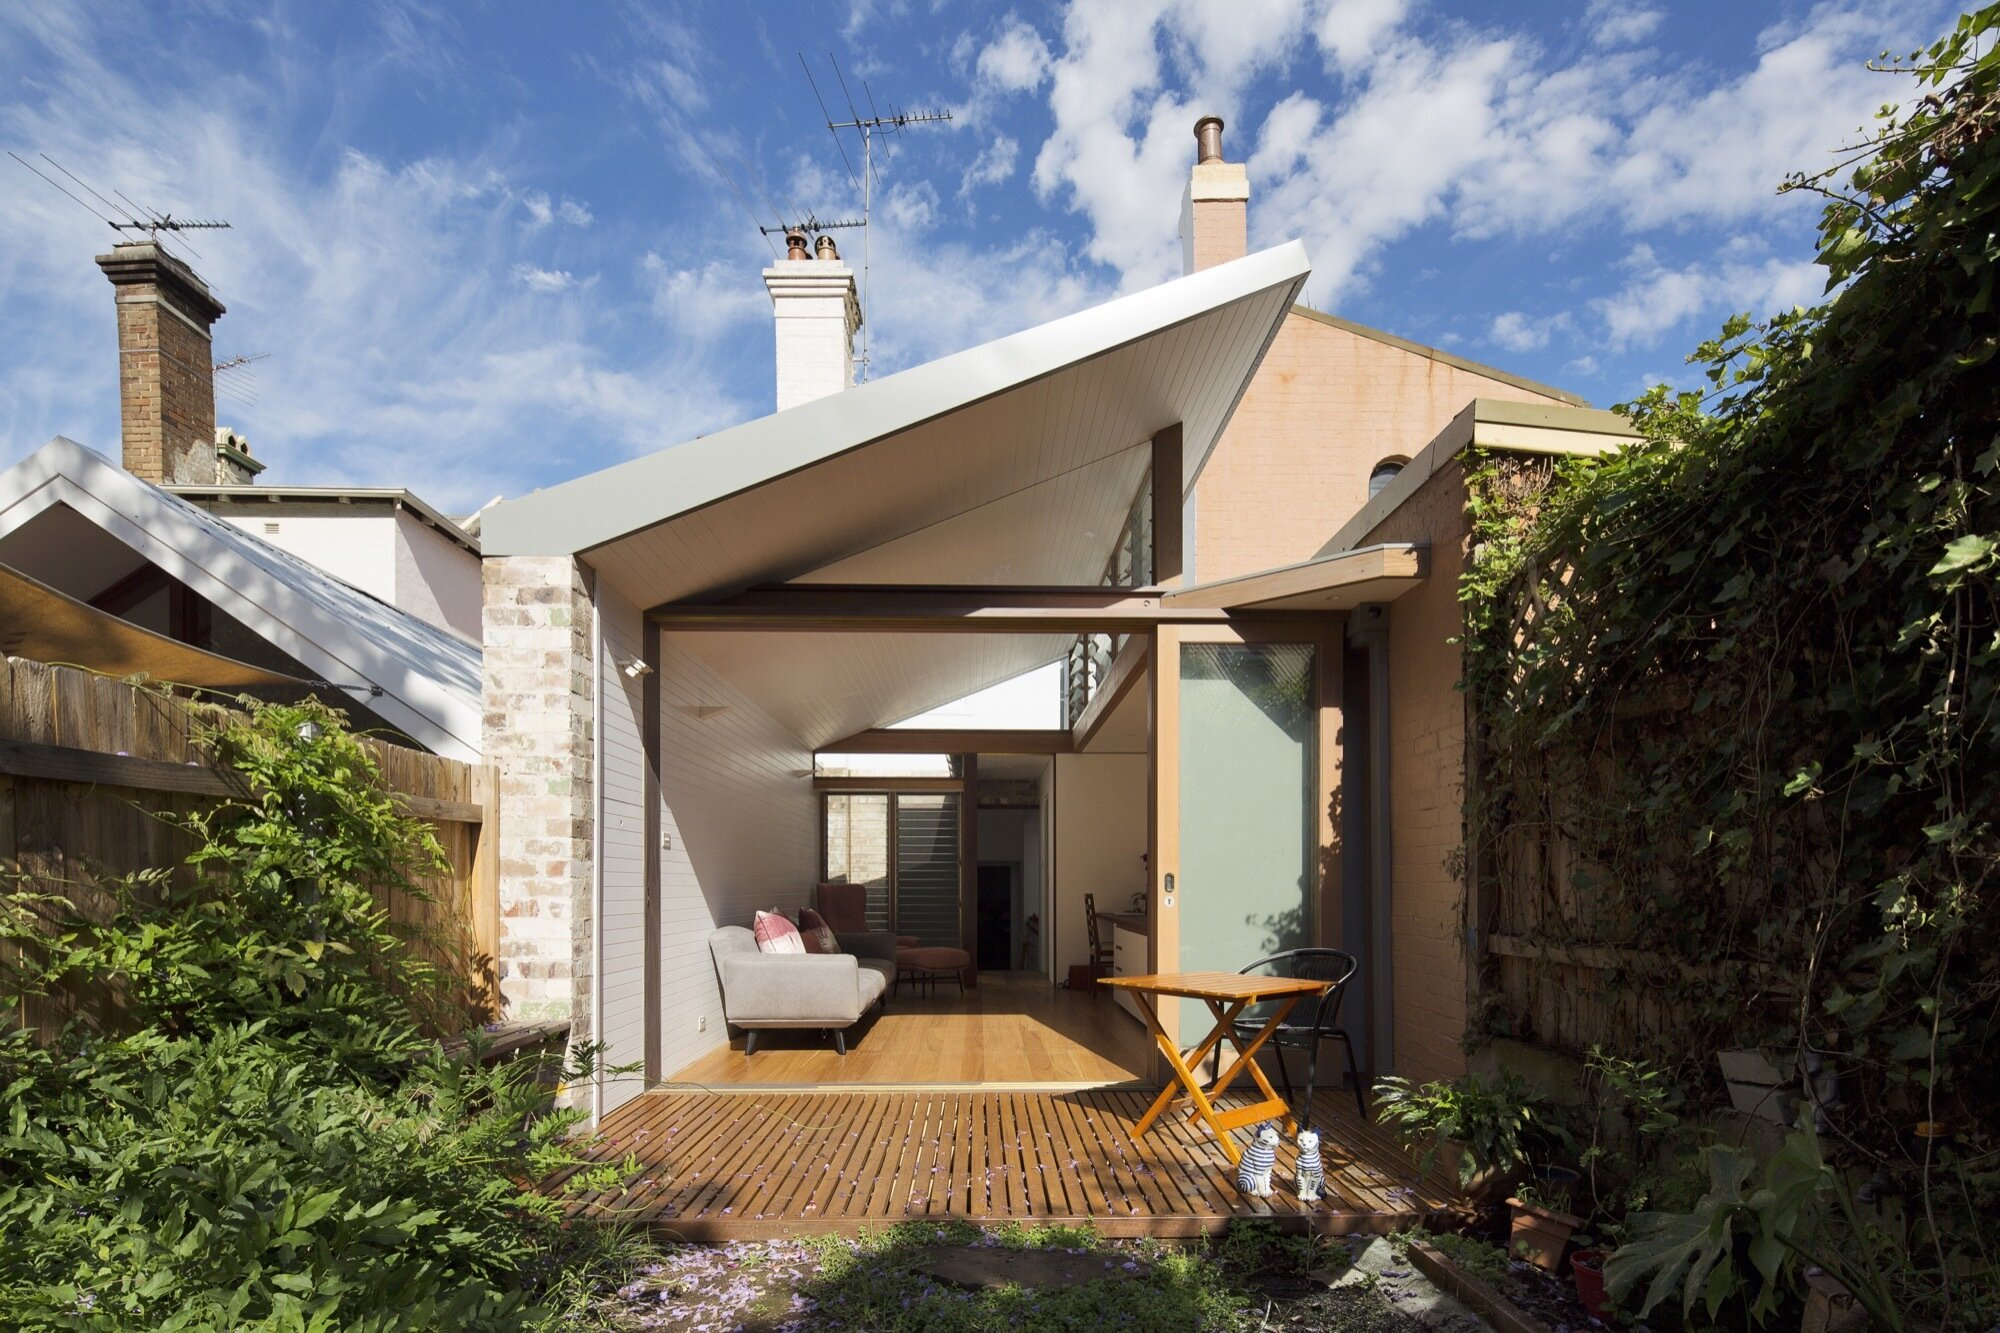 A narrow house renovation in sydney for two retired teachers for External house renovation